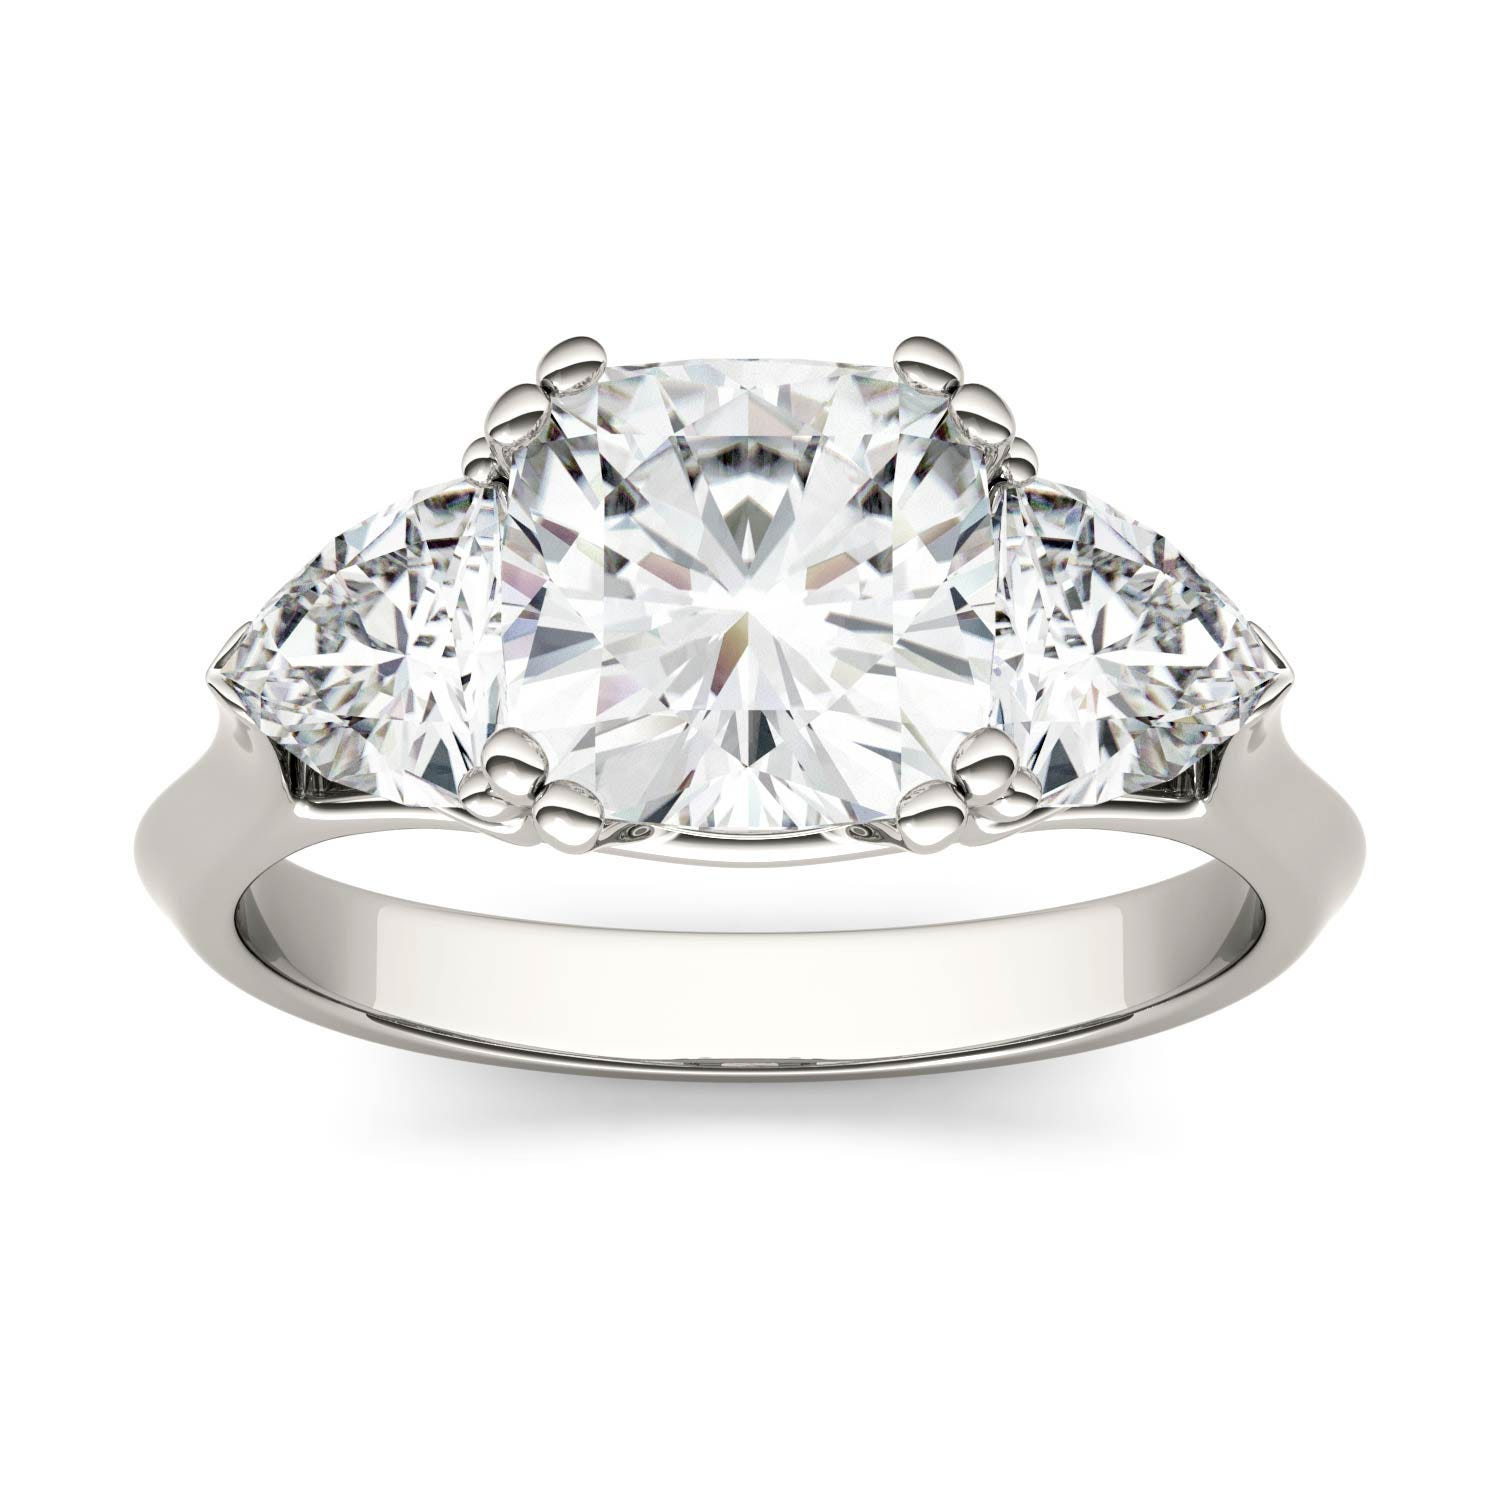 Cushion 2.74cttw DEW Moissanite Three Stone Engagement Ring in 14K White Gold 573728